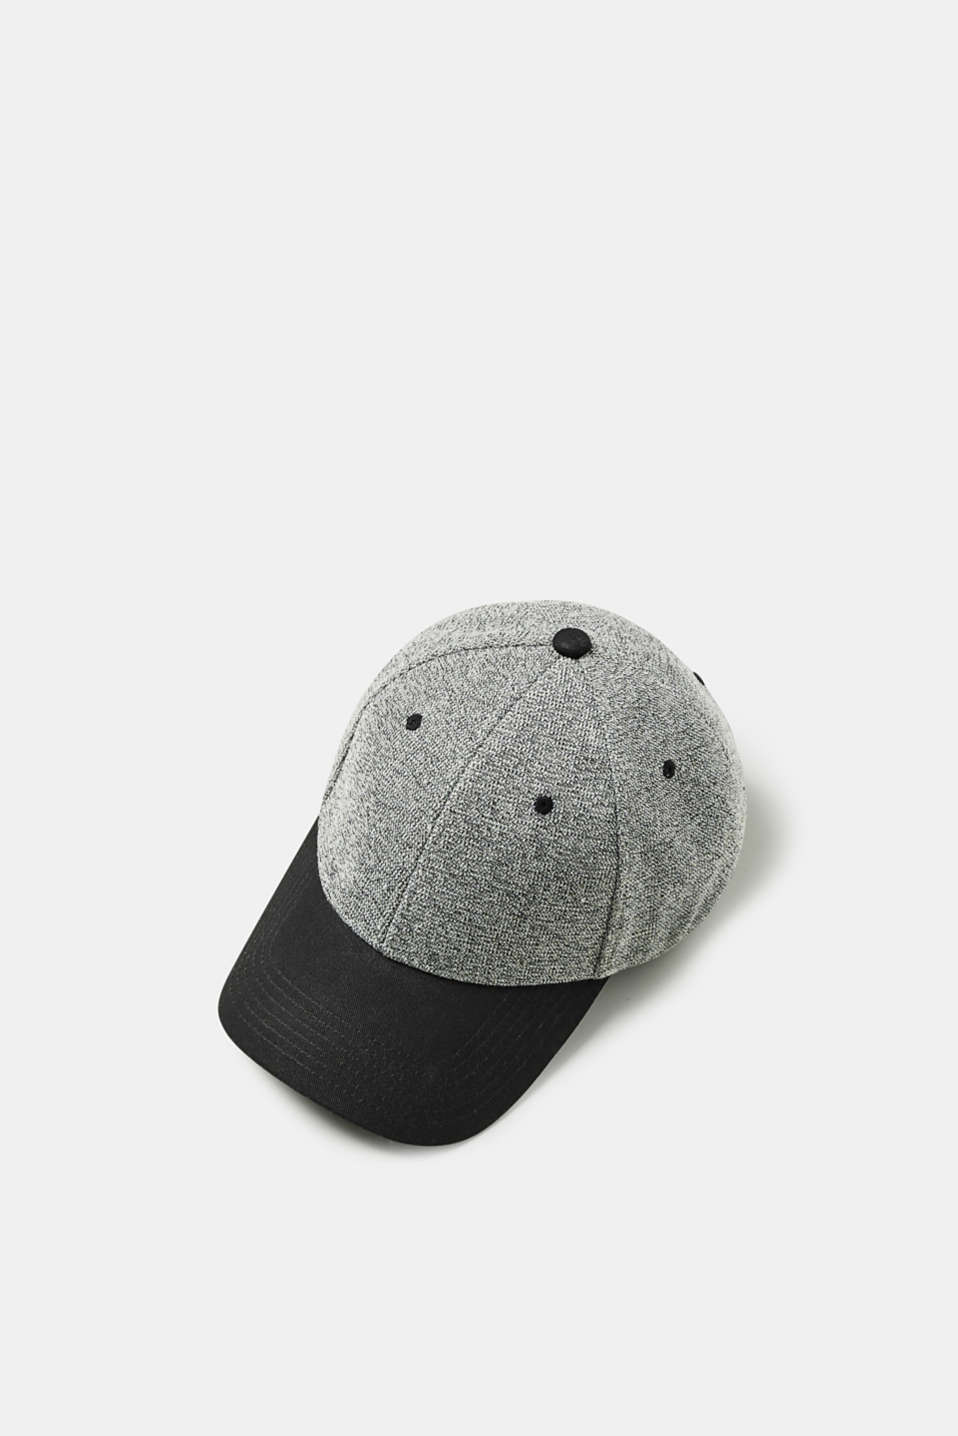 Esprit - Baseball cap in lightweight, mixed texture materials